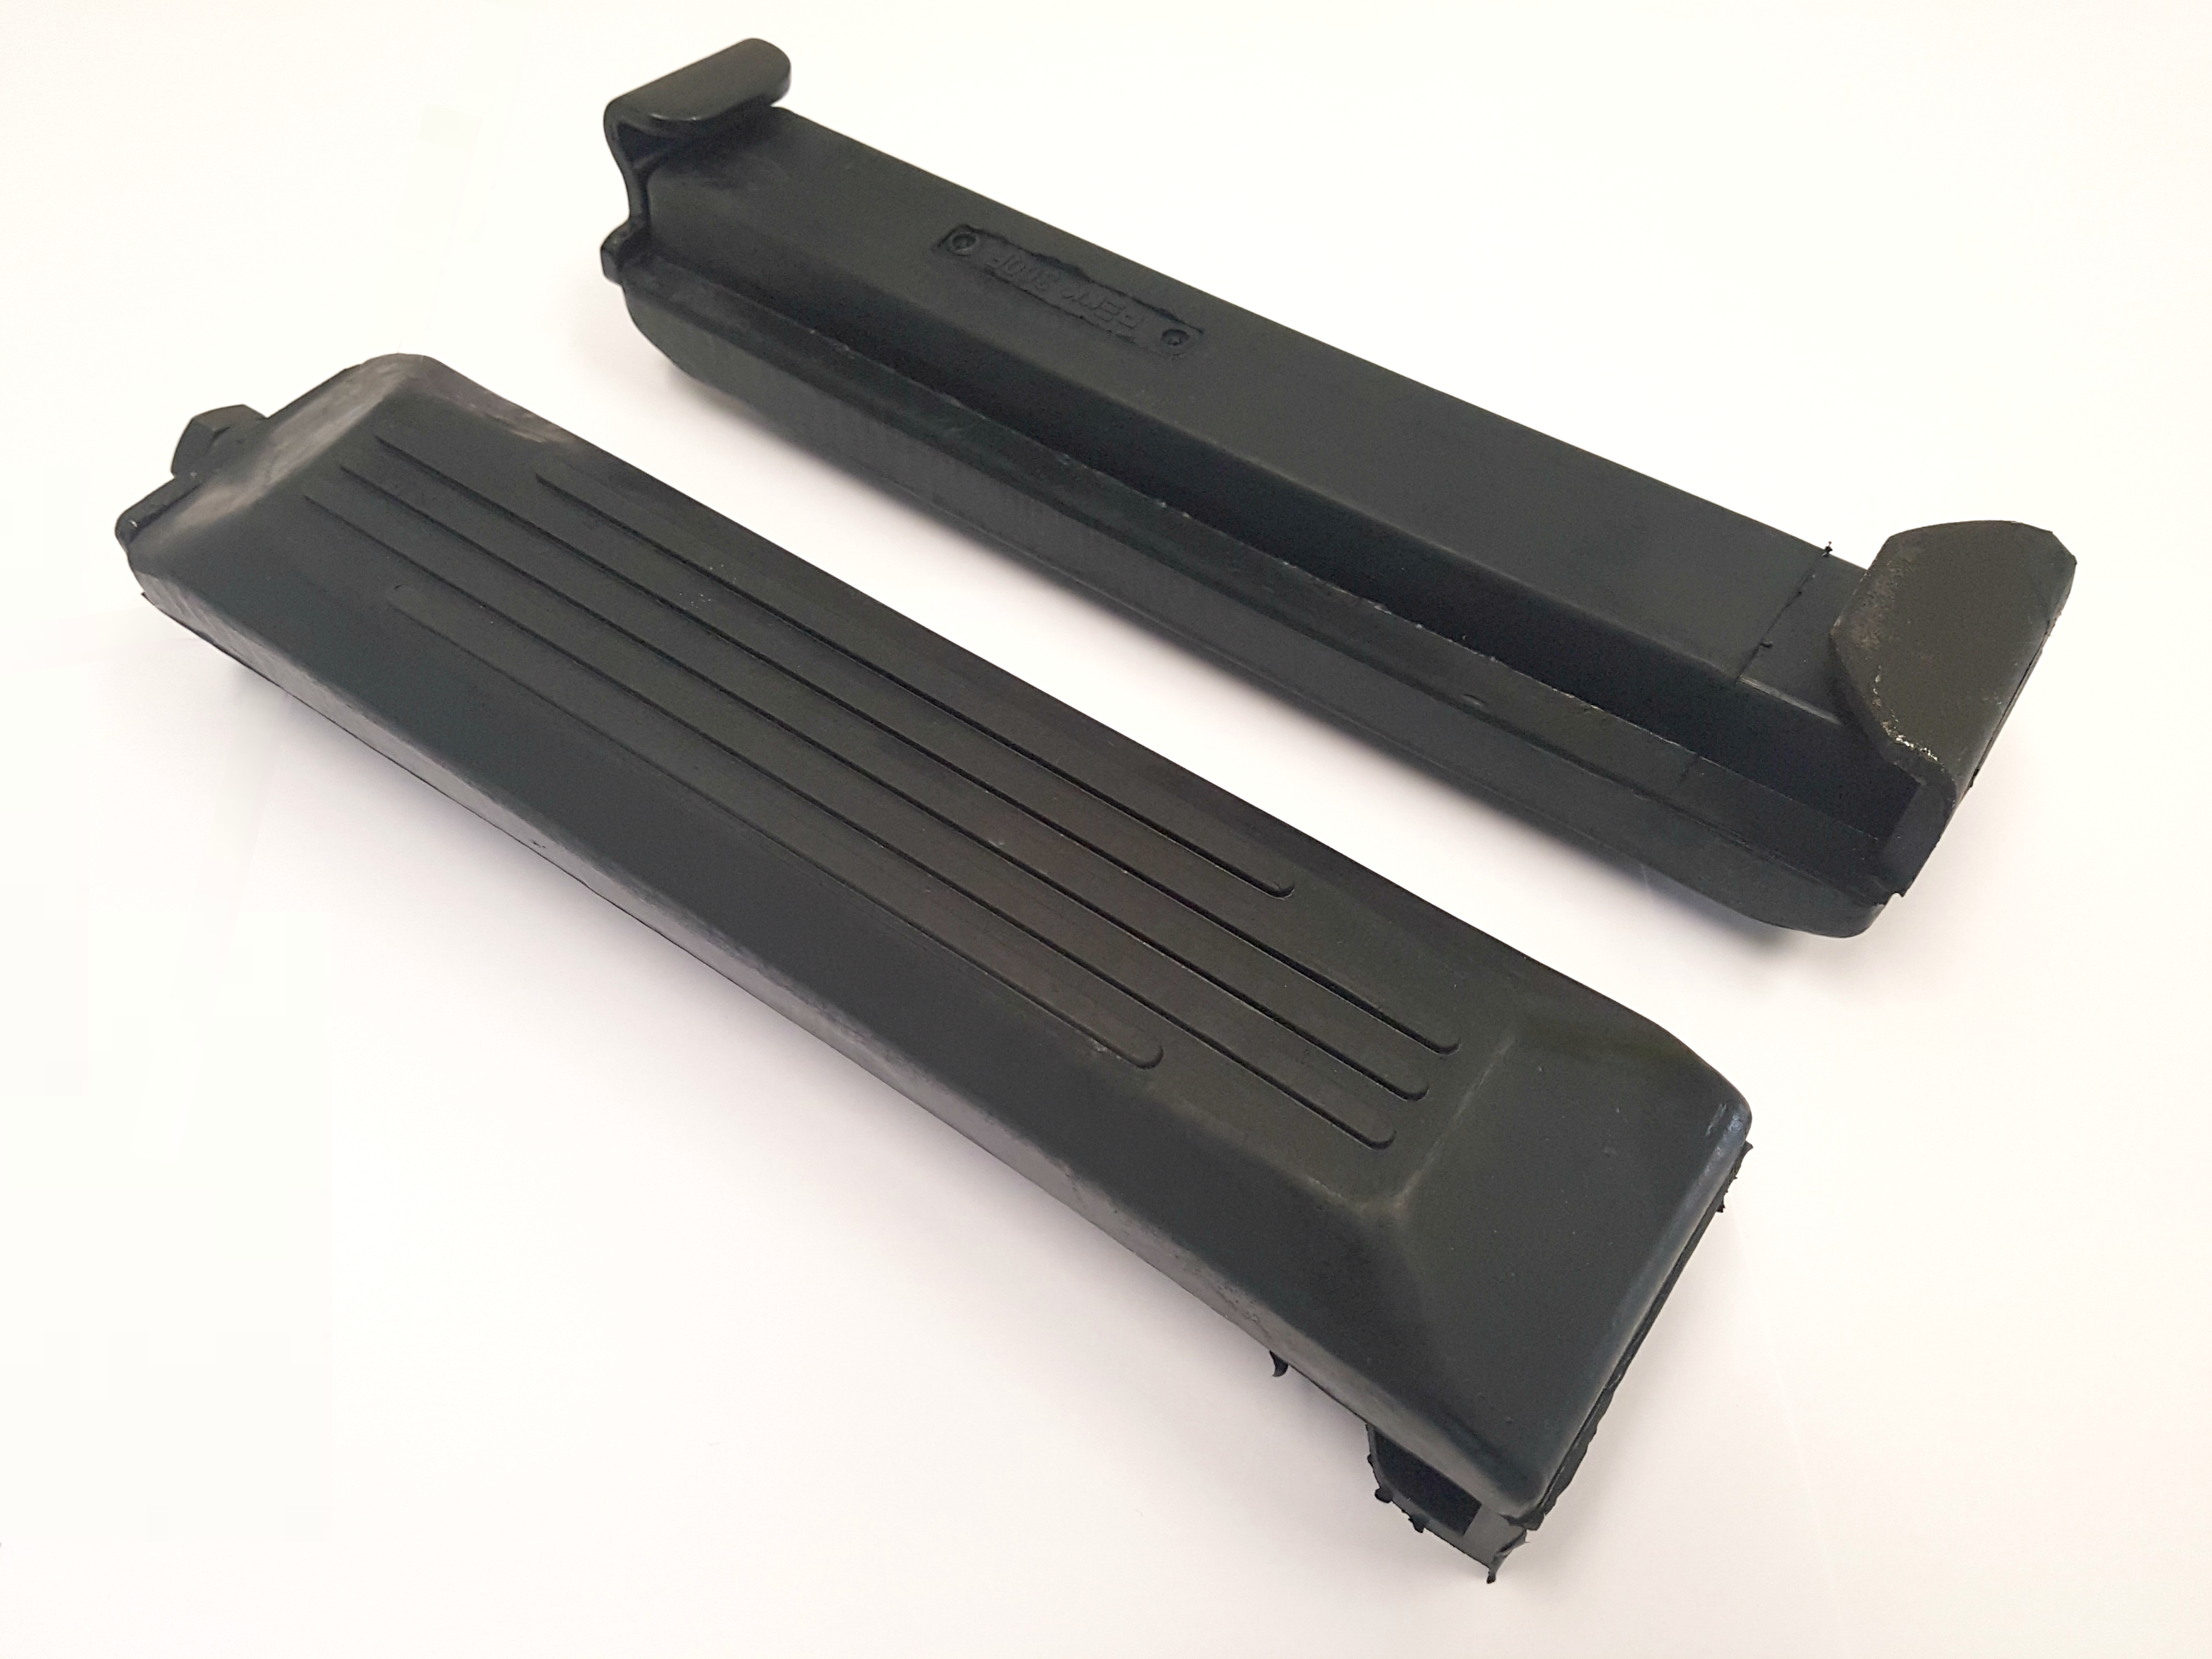 Clip on rubber pads